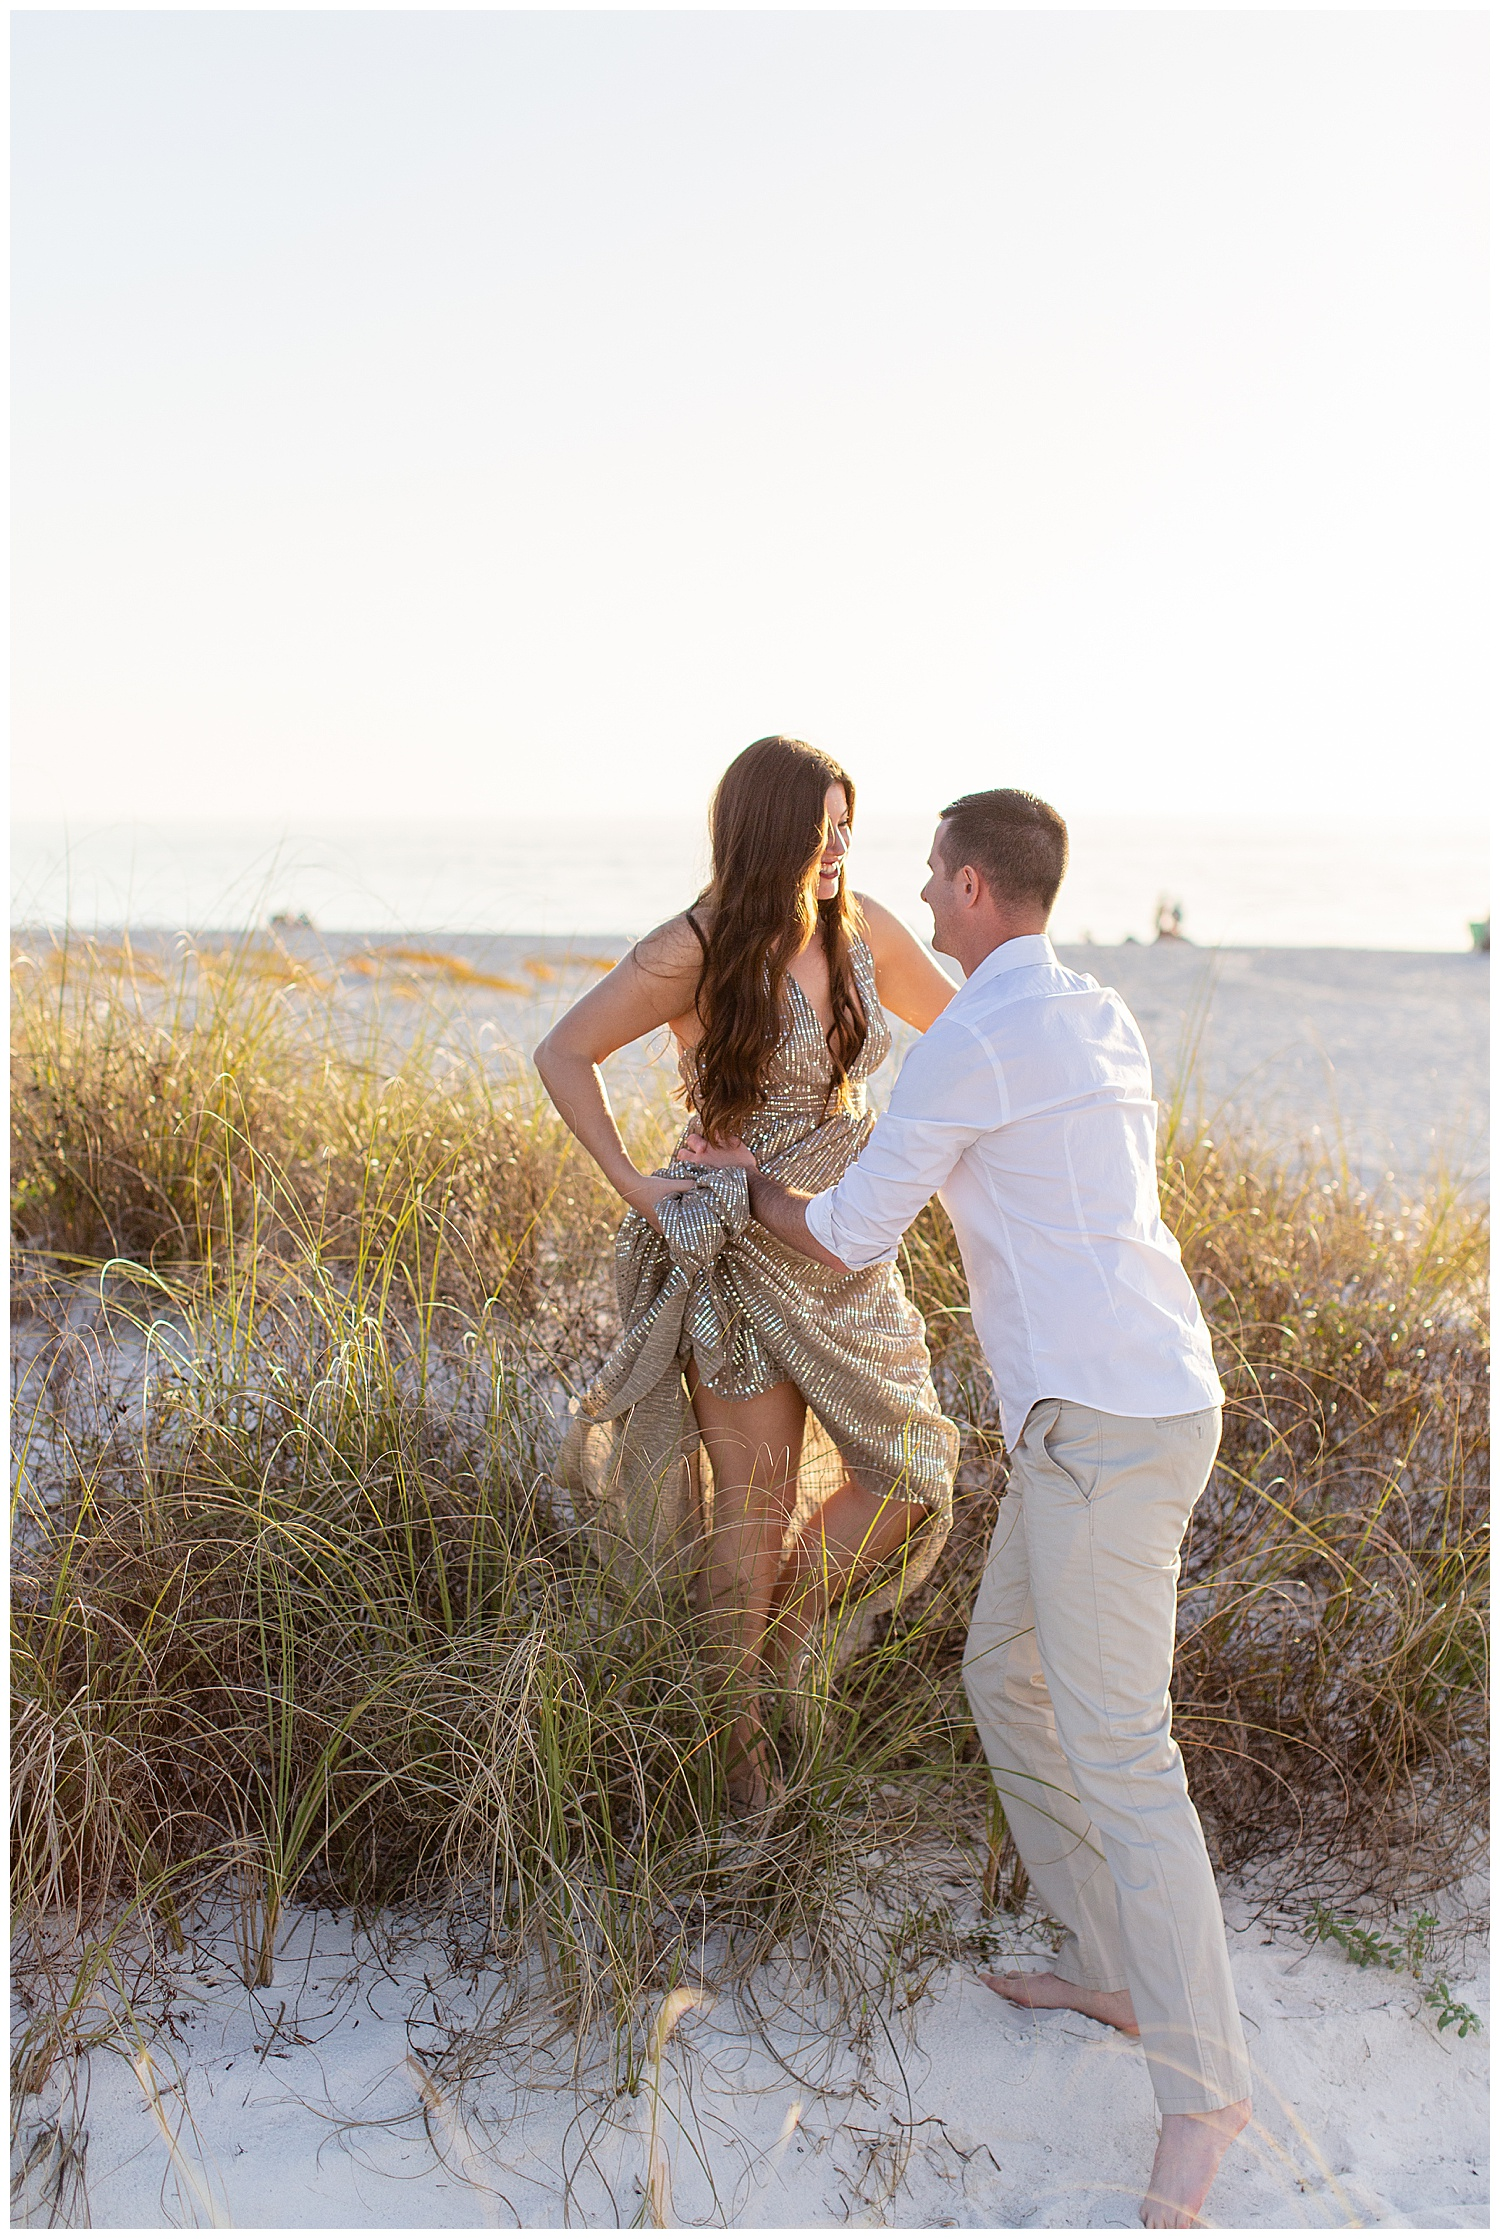 emily-belson-photography-florida-engagement-17.jpg